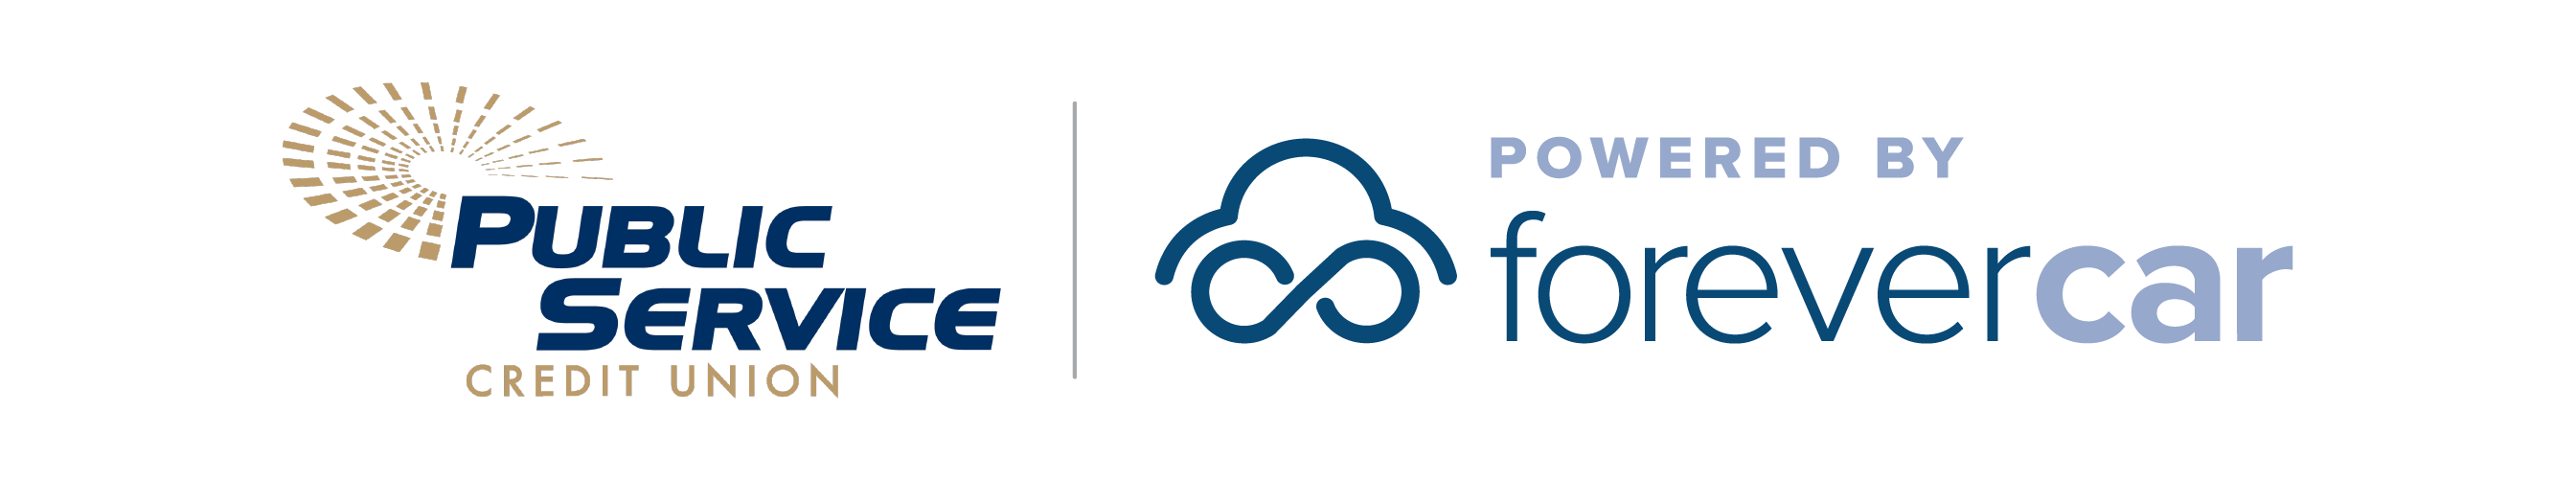 Public Service Credit Union Powered by ForeverCar Logo